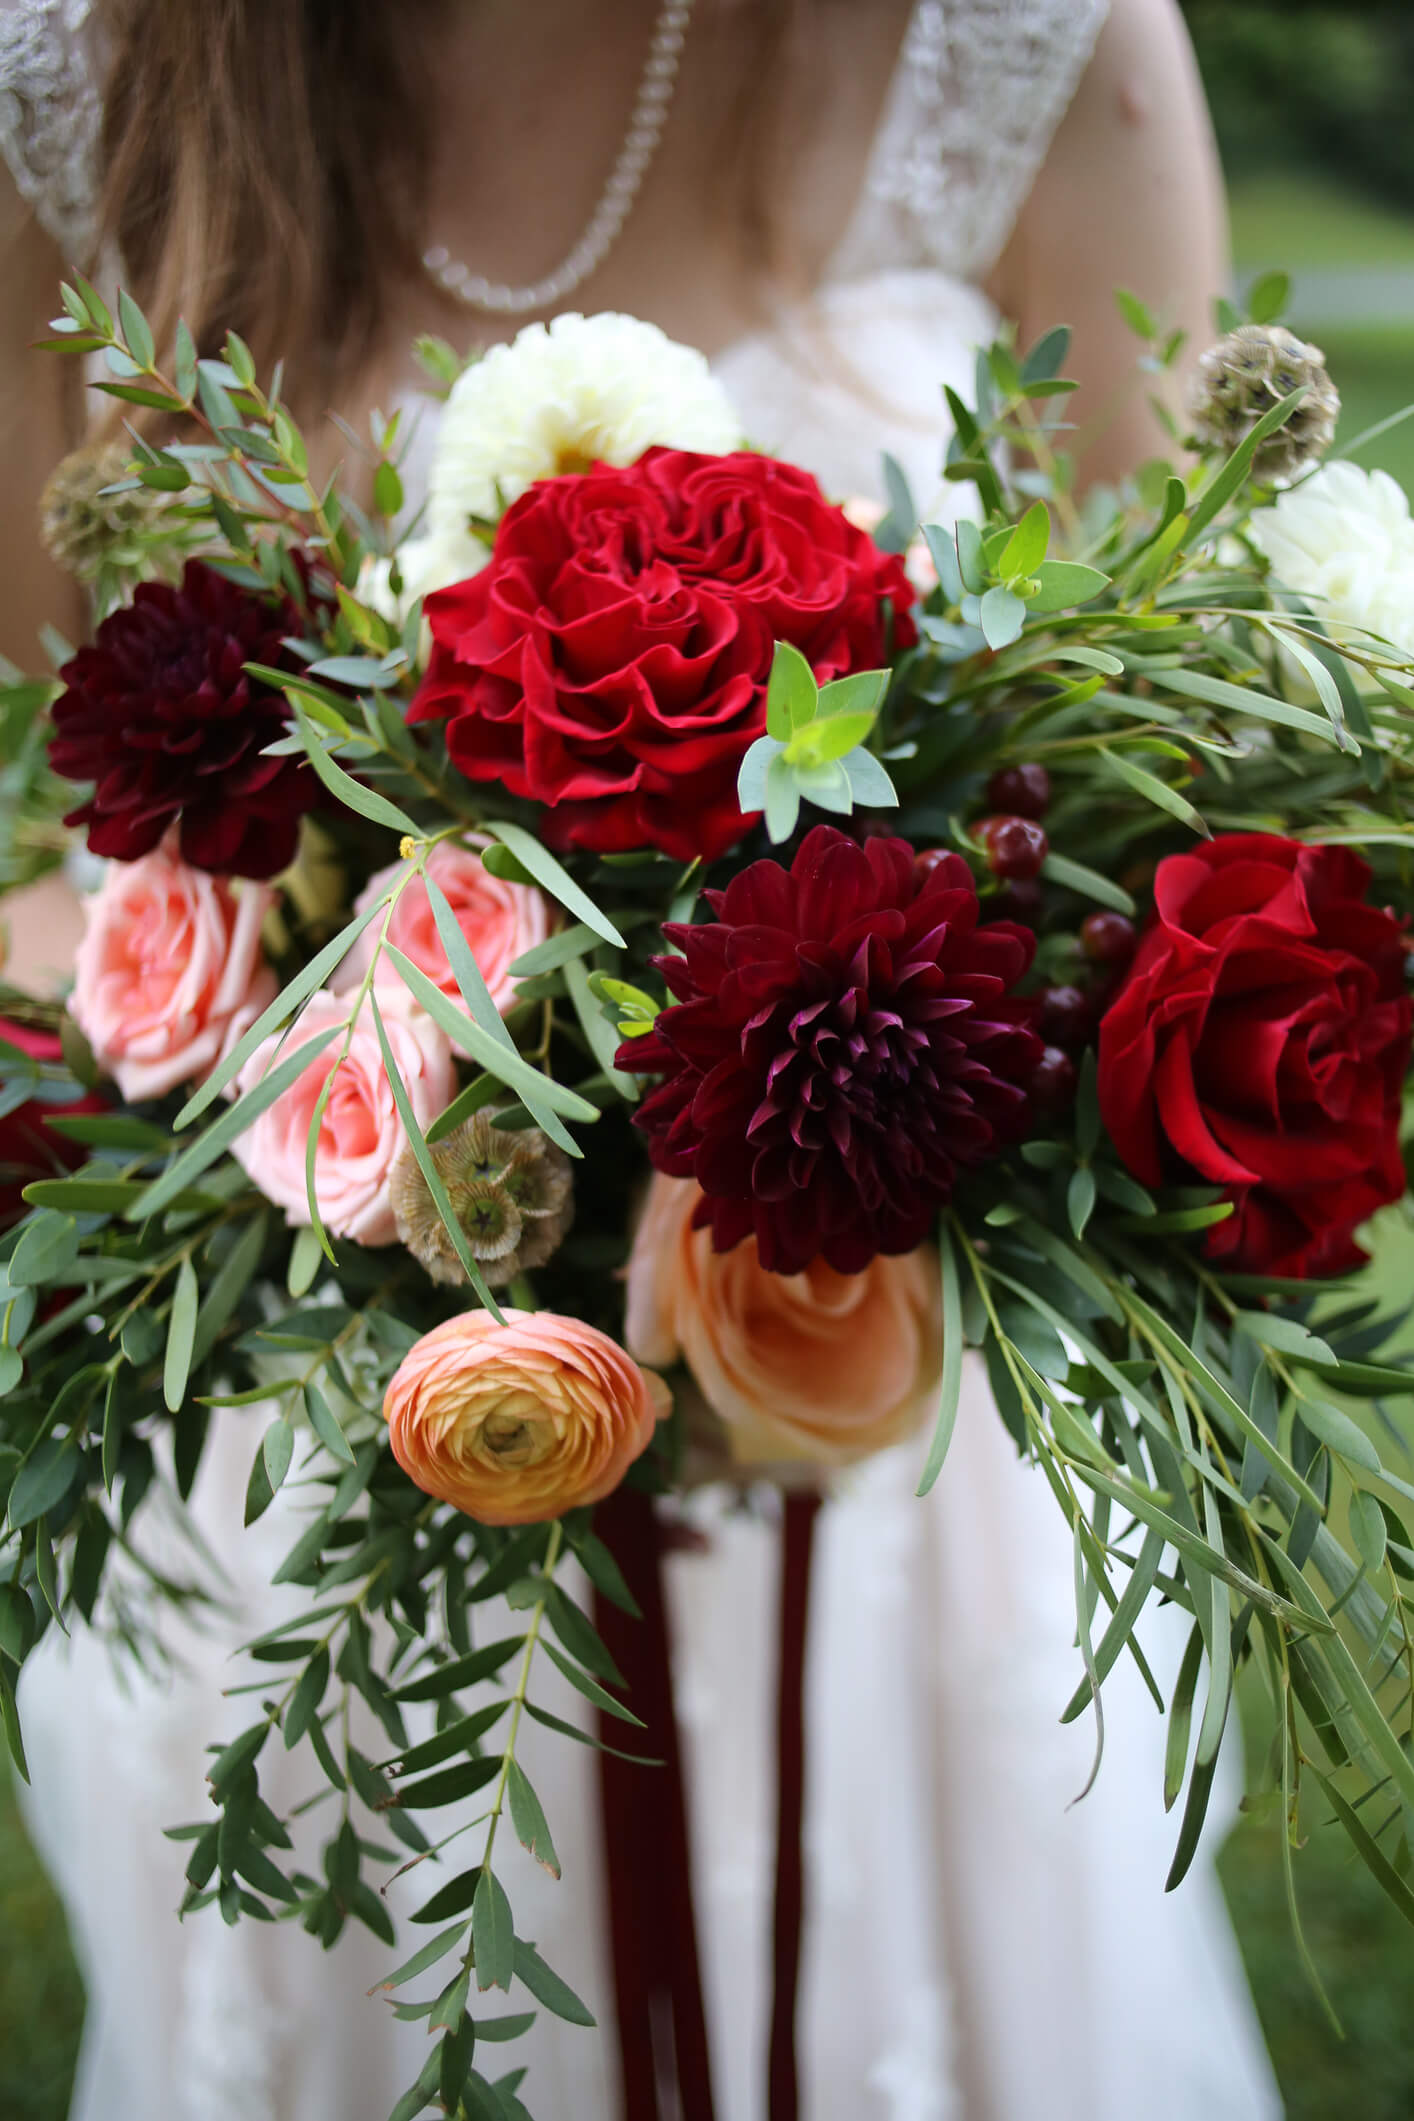 Bride Holding a Bouquet of Red, Maroon, Pink, Peach, and Yellow Flowers - Ranunculus, Roses, Dahlias